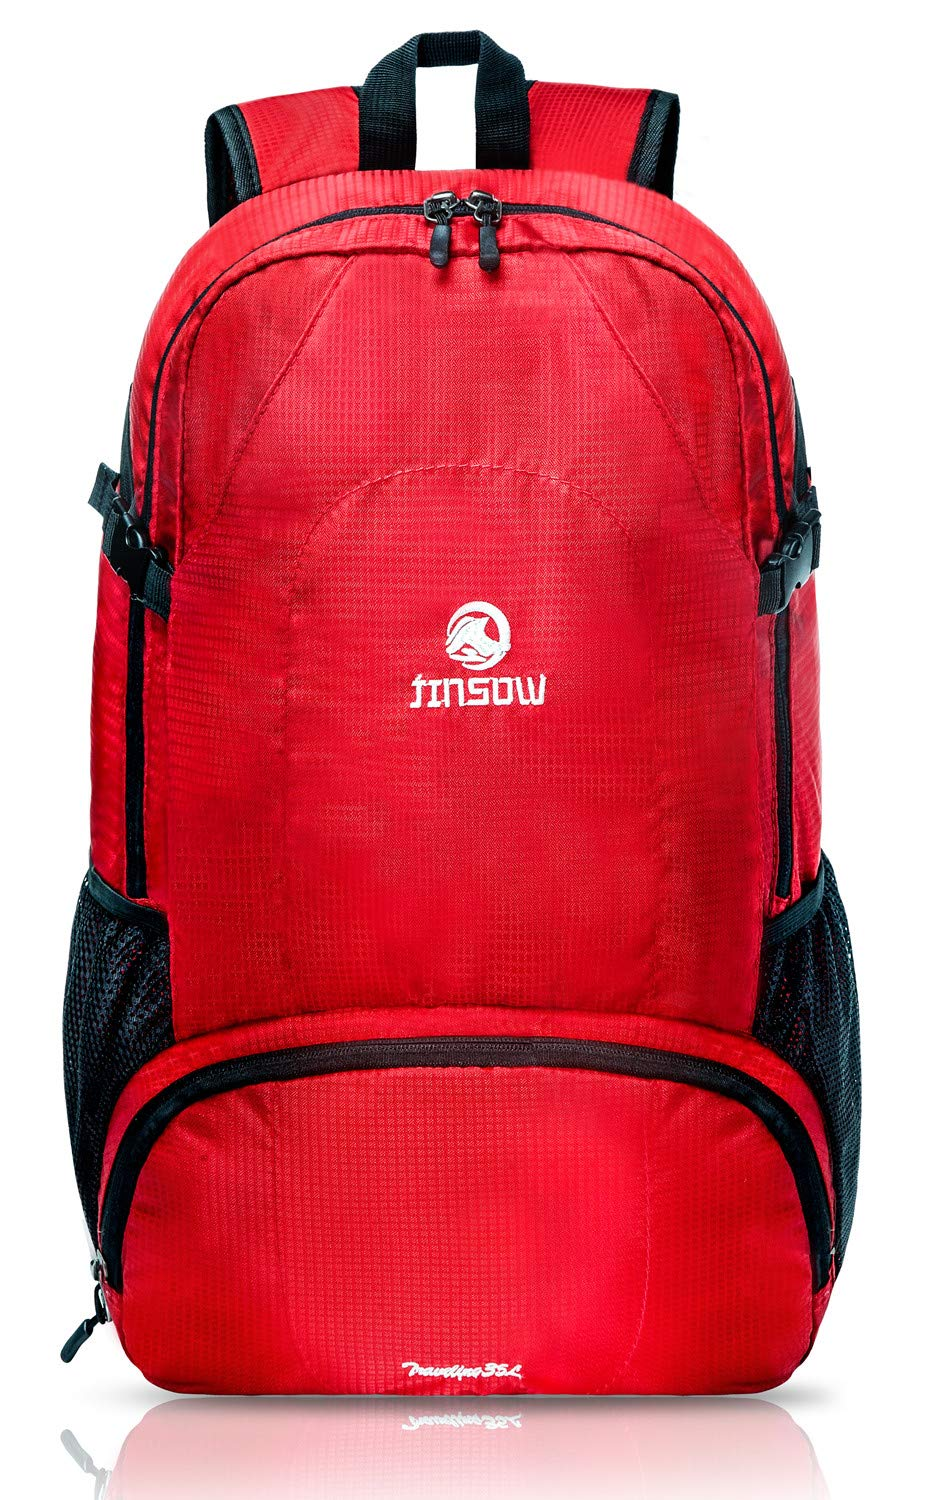 JINSOW 35L Lightweight Packable Hiking Backpack Daypack 114c670ee227d